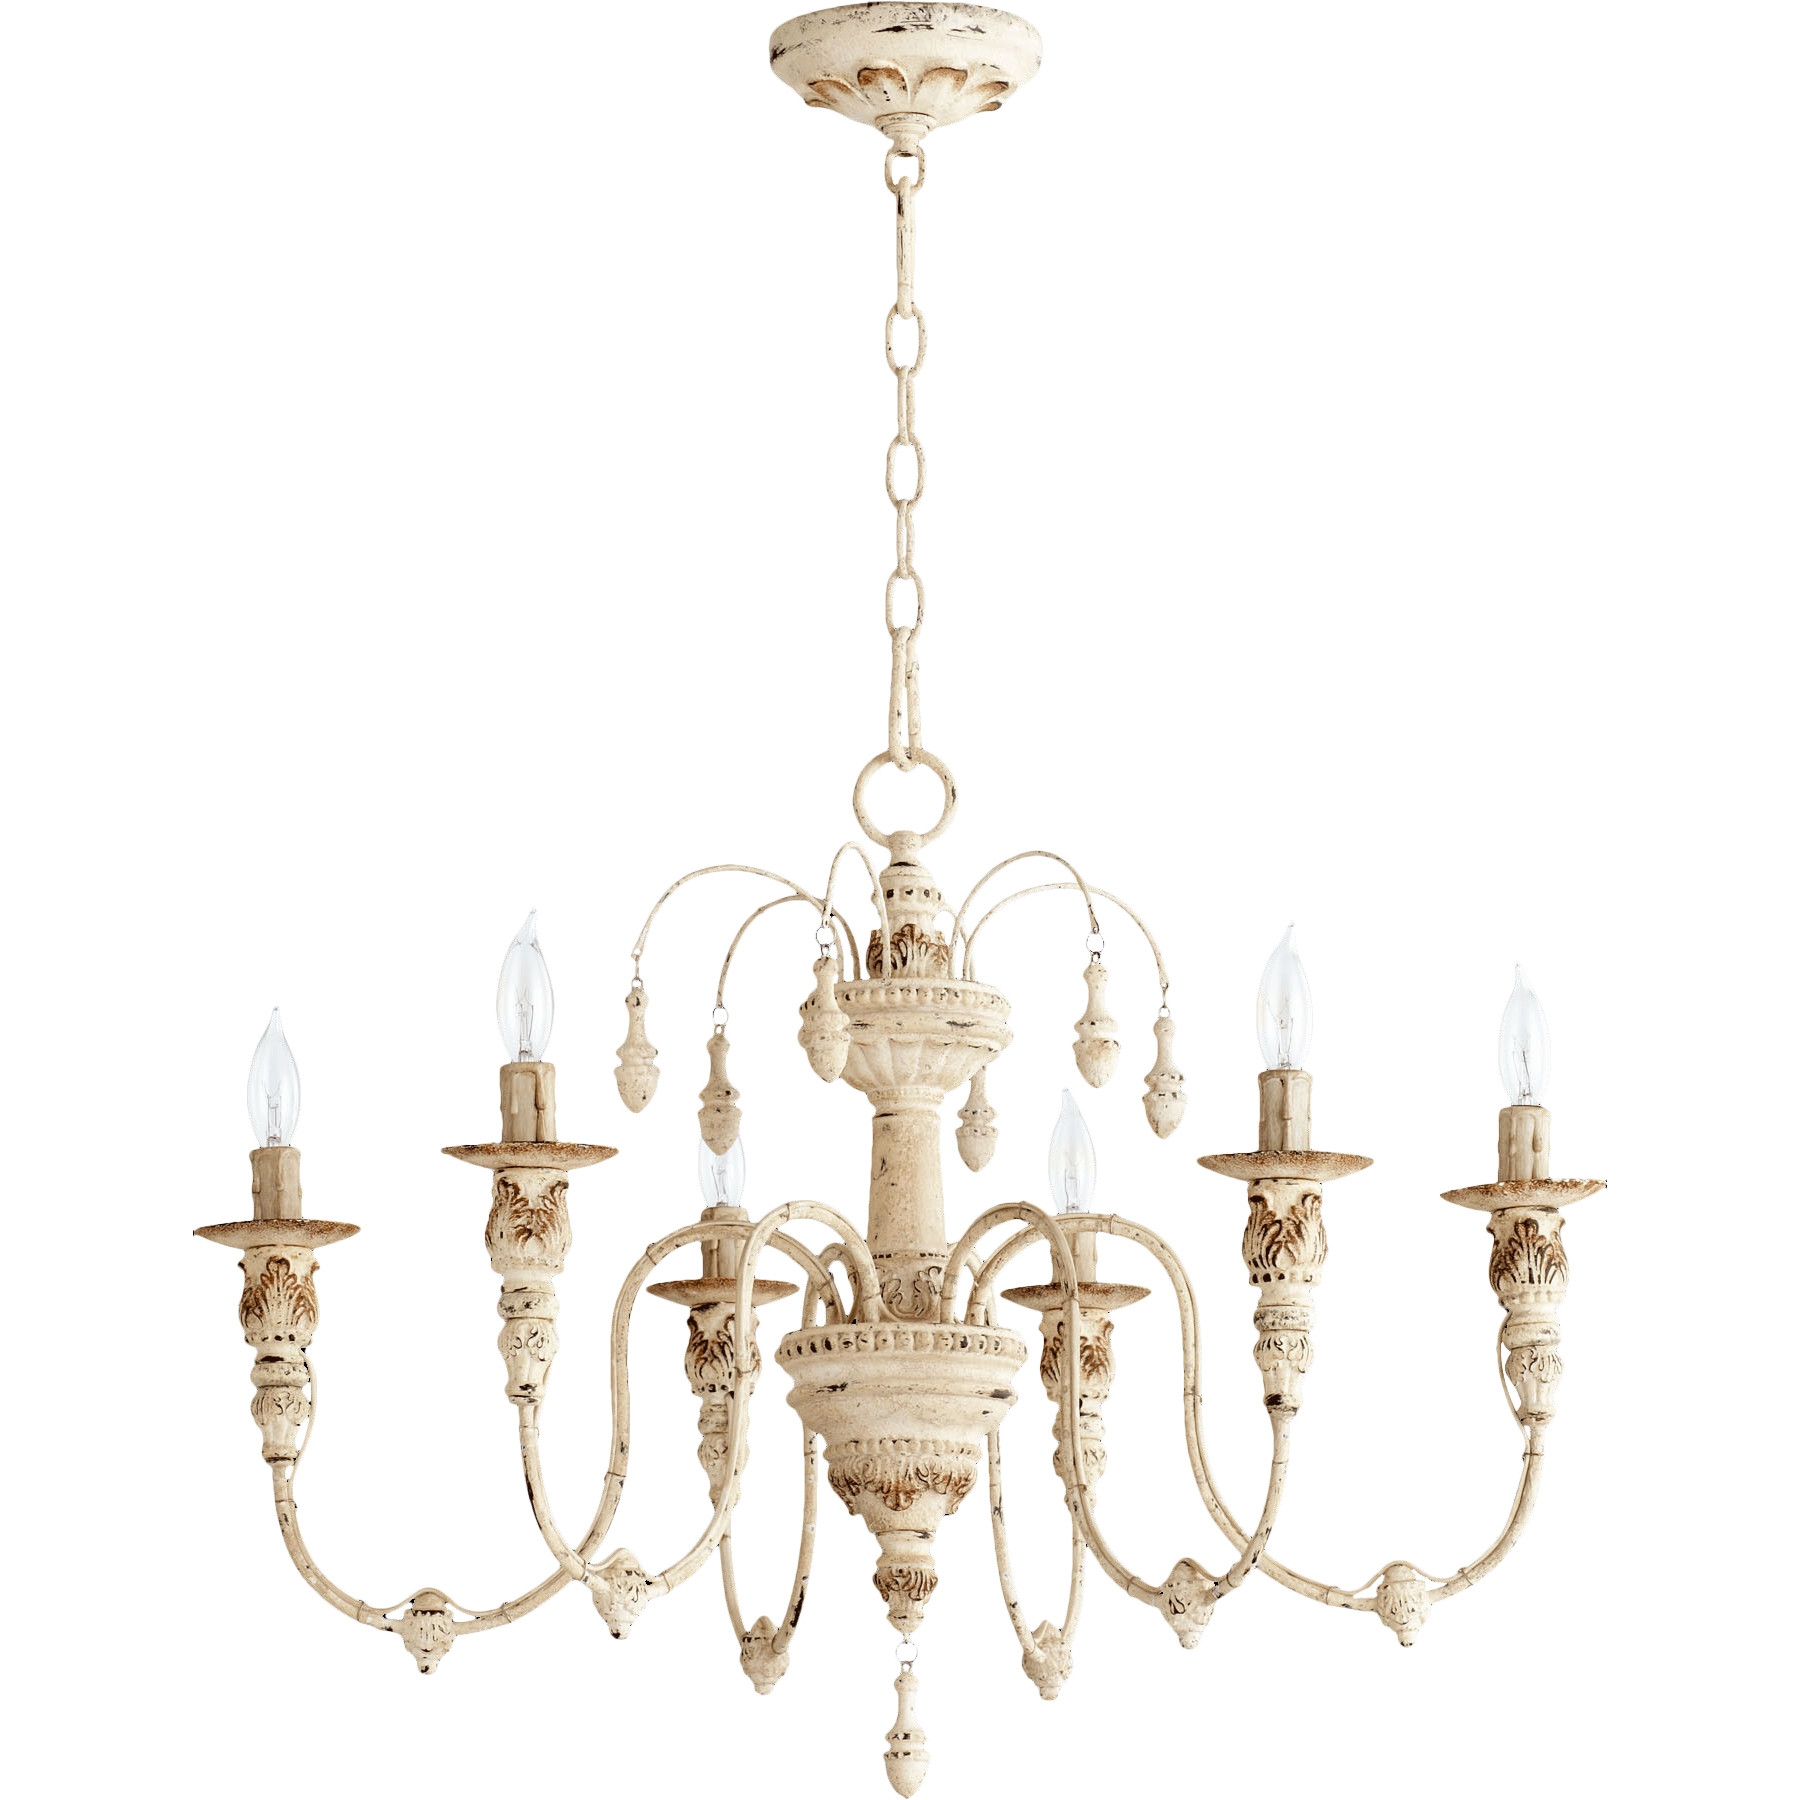 Chandelier Astonishing French Style Chandeliers Glamorous French In Grey Chandeliers (Image 8 of 25)